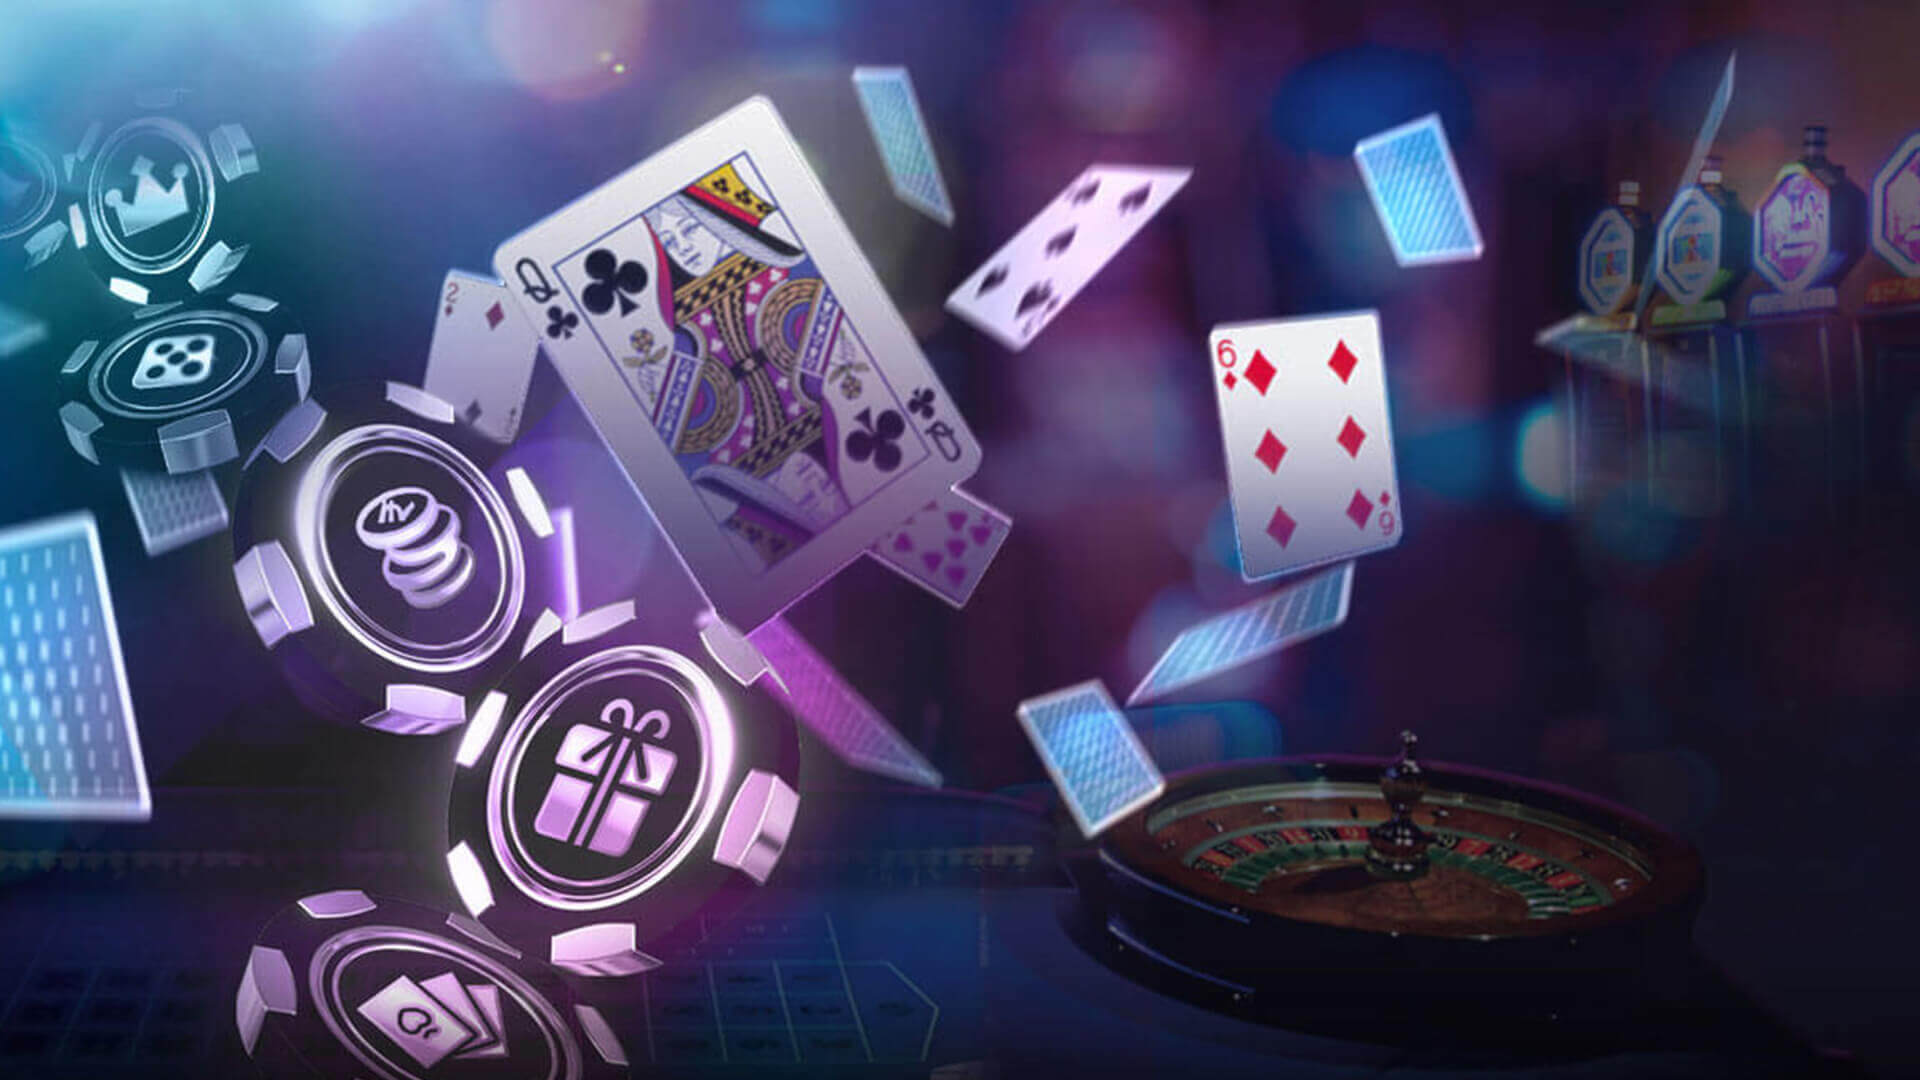 Poker stars в россии freeroll passwords